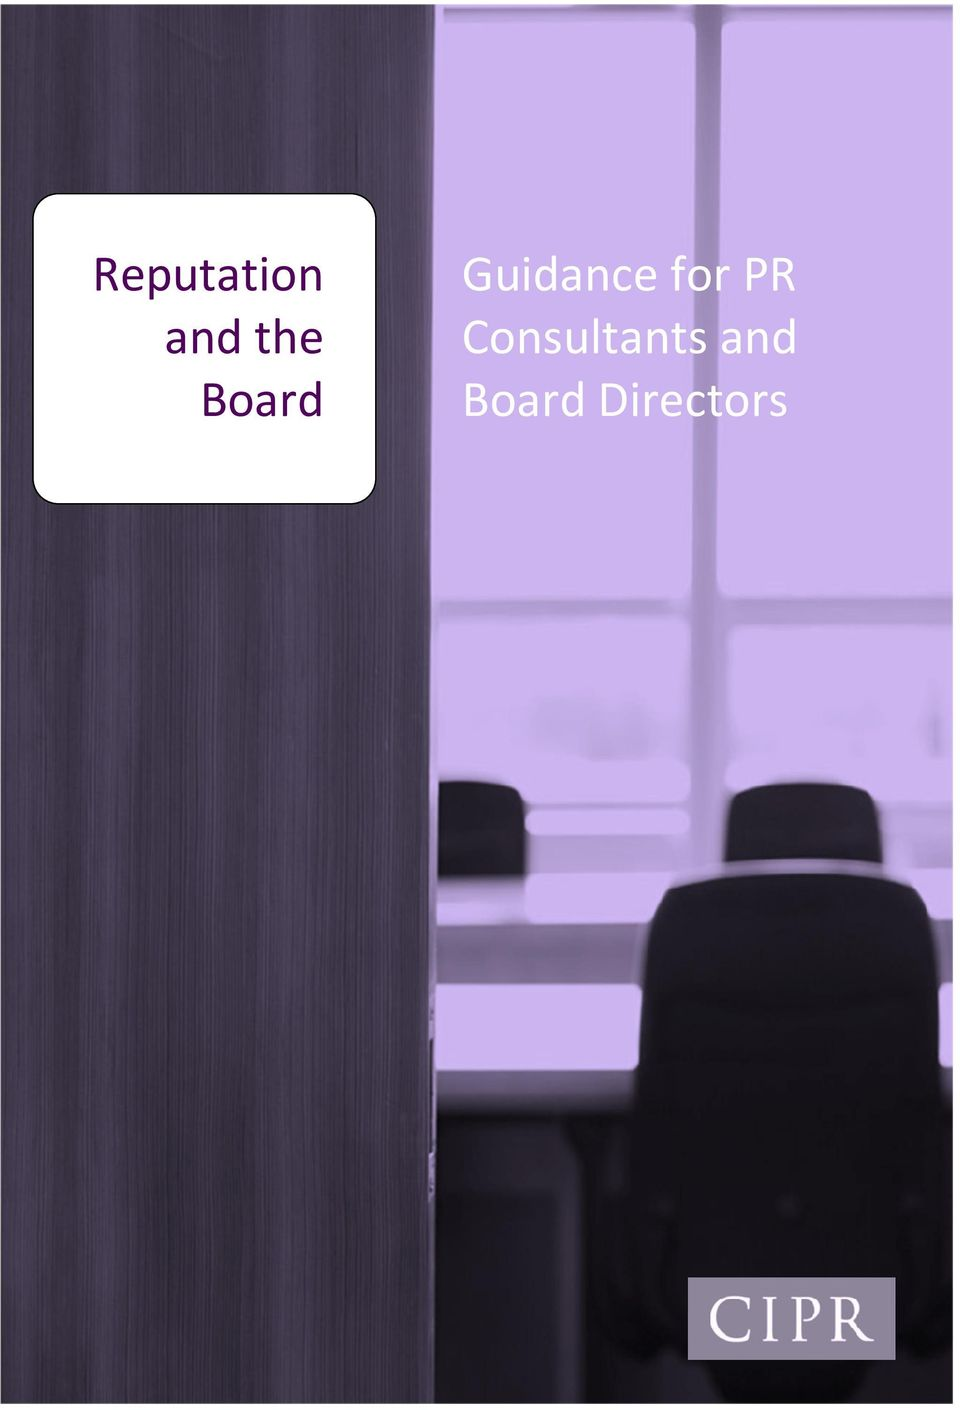 Guidance for PR